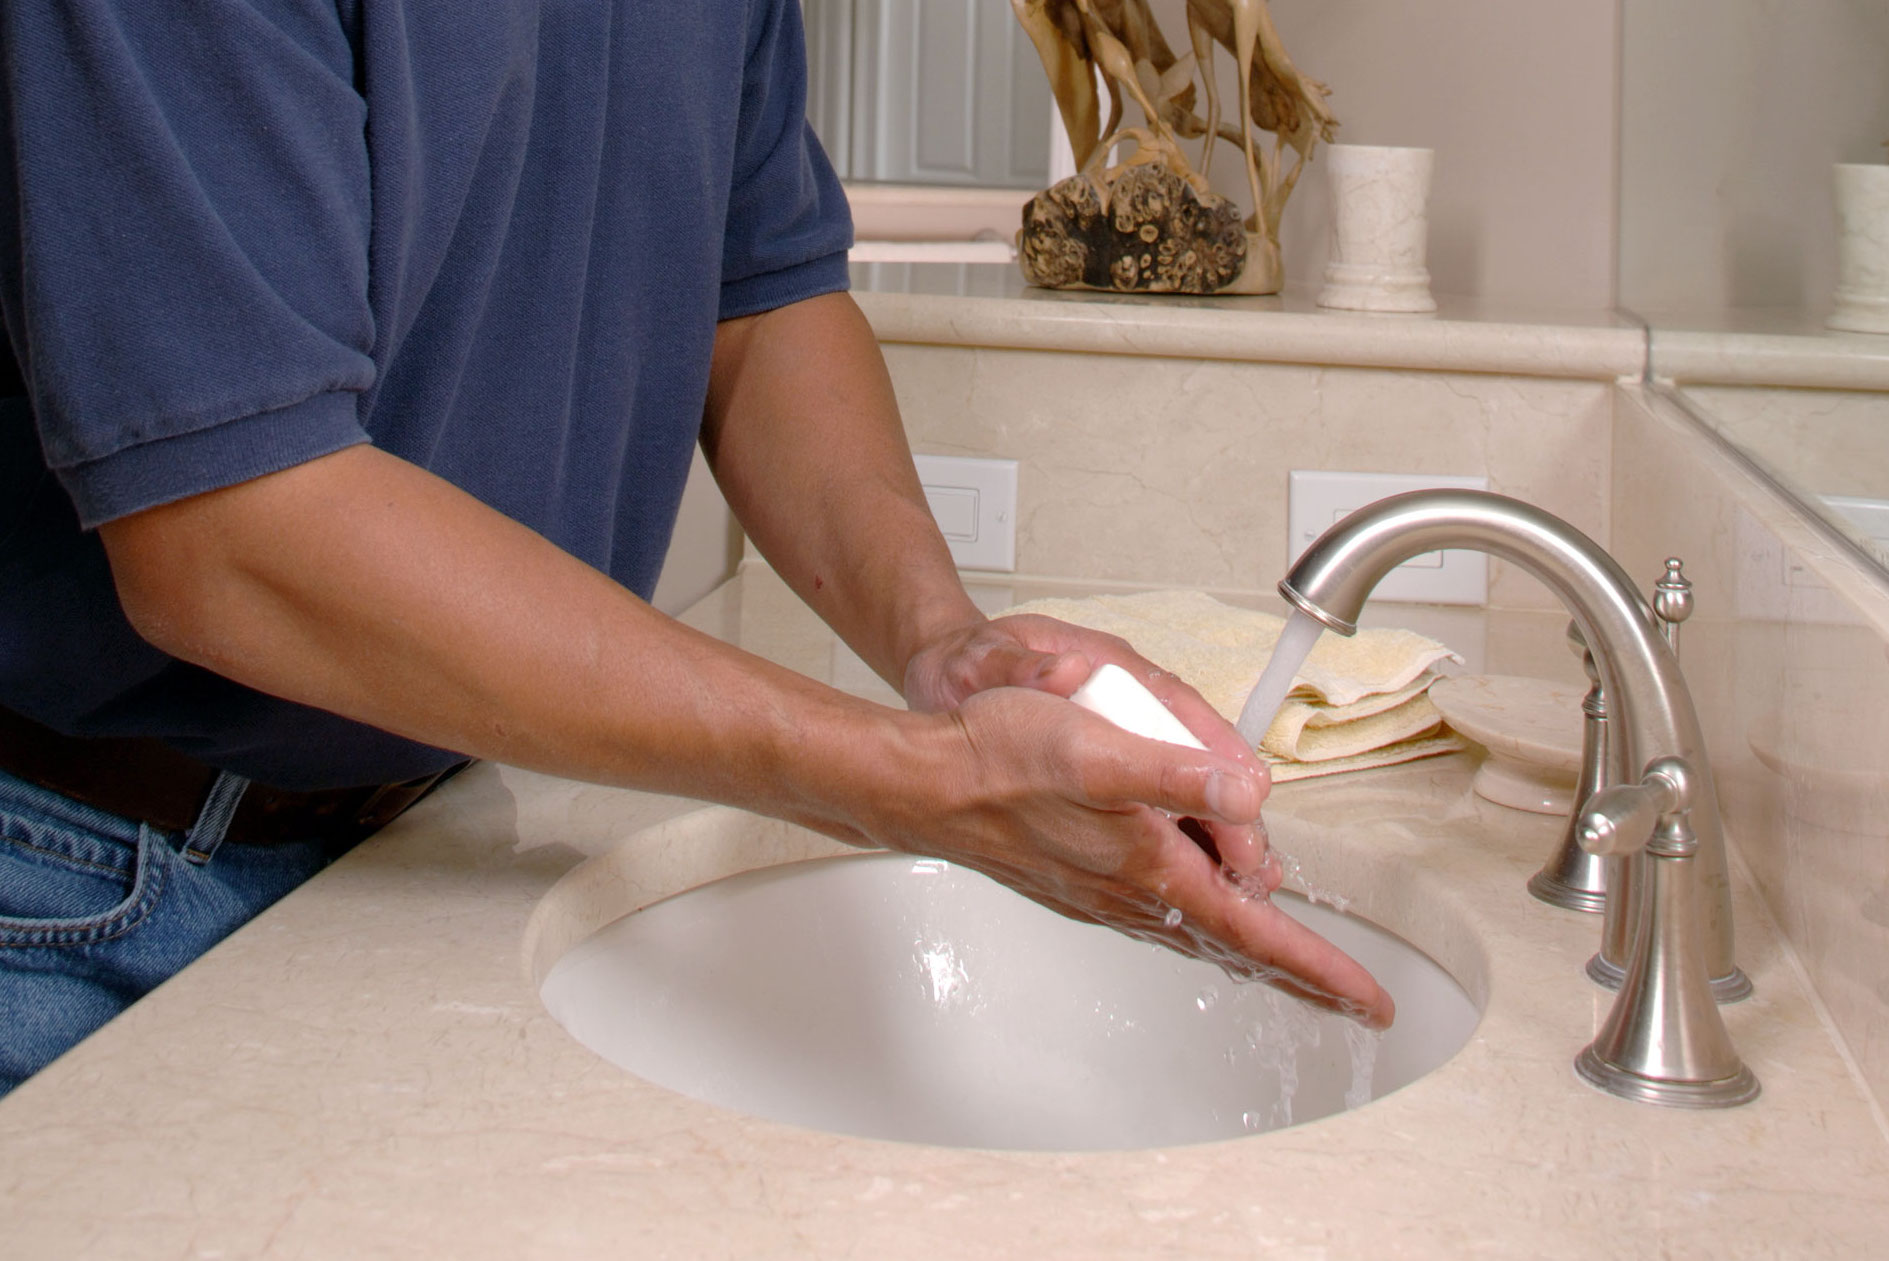 A man washing his hands.